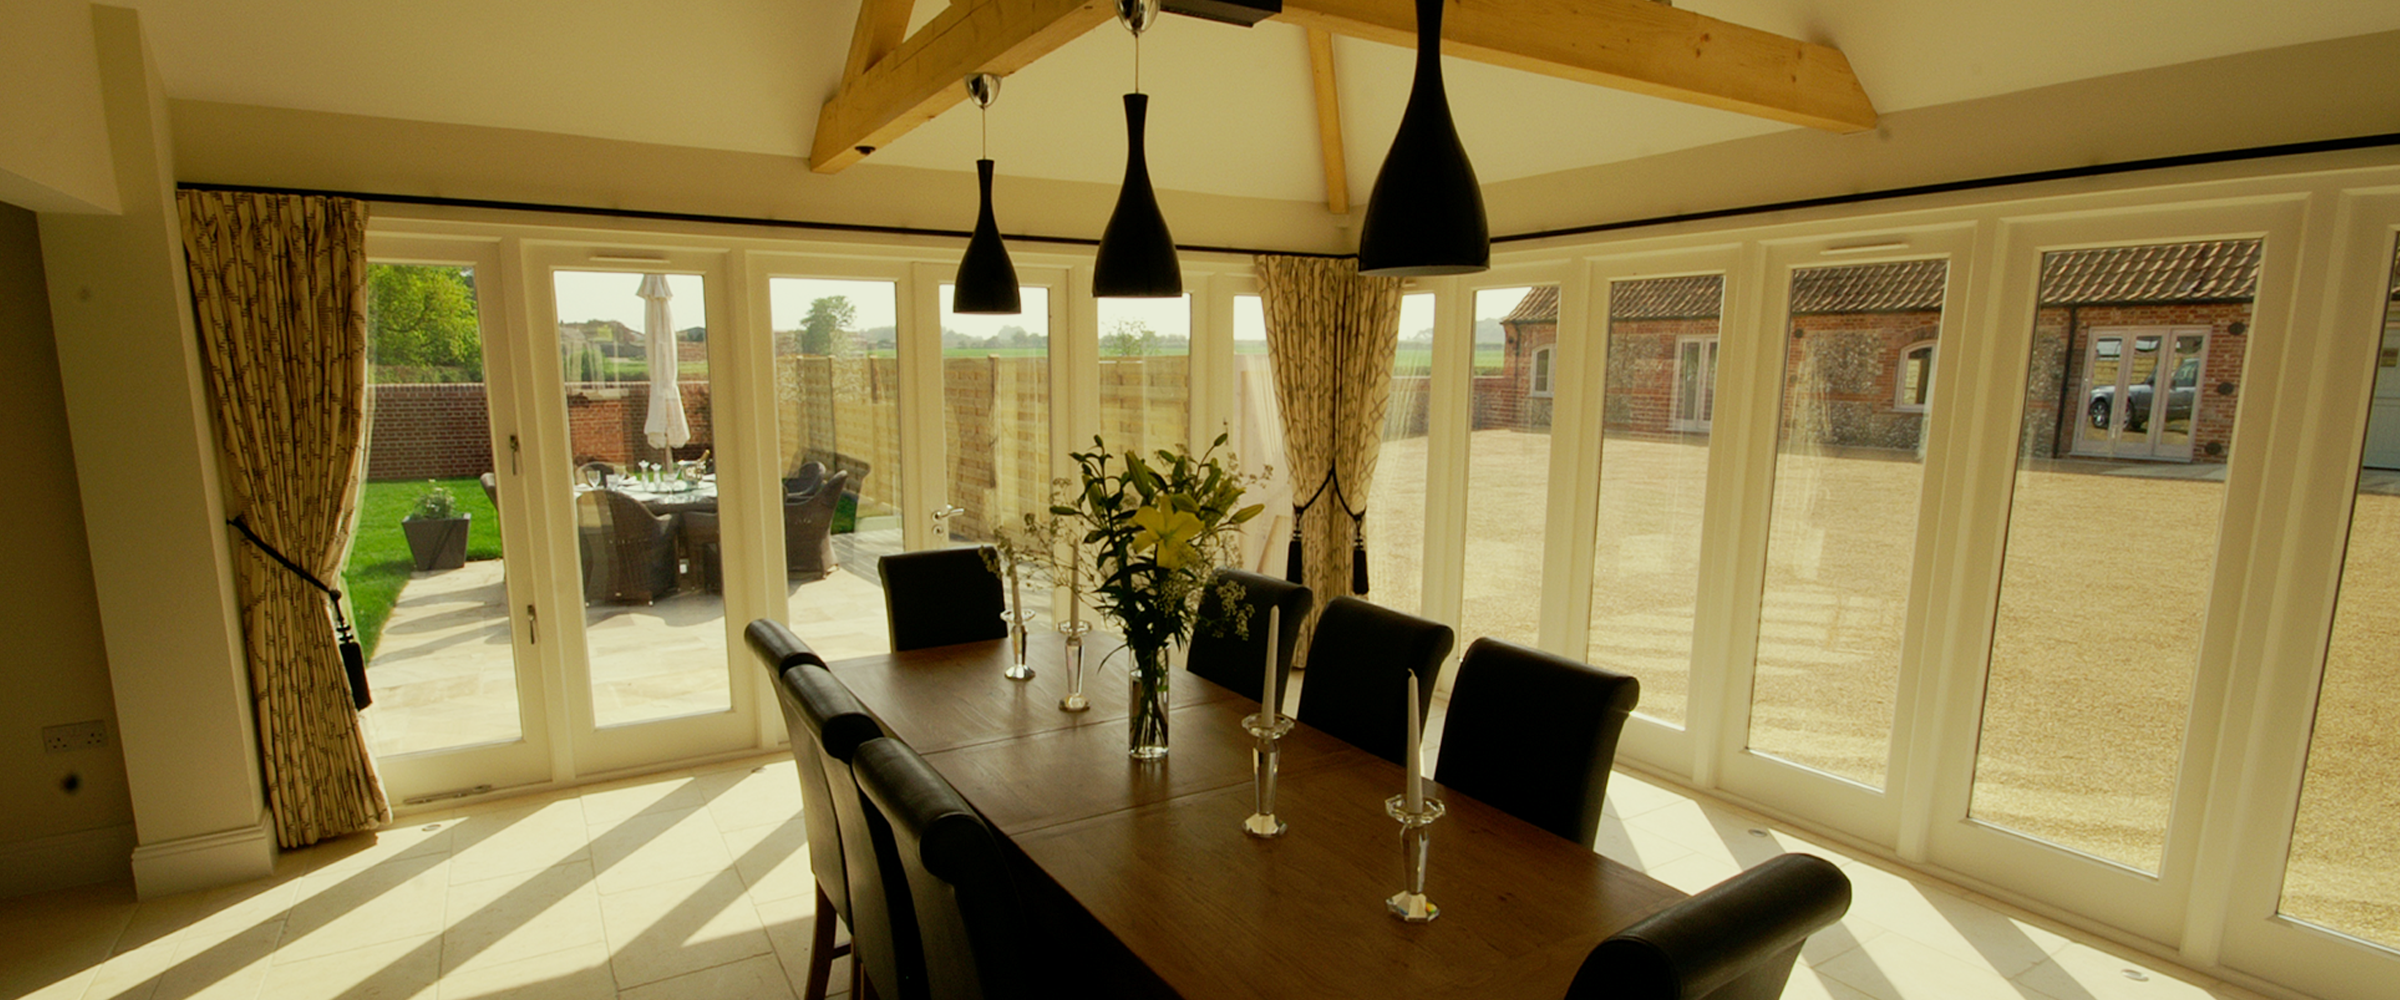 The lodge - table with garden view - slider image